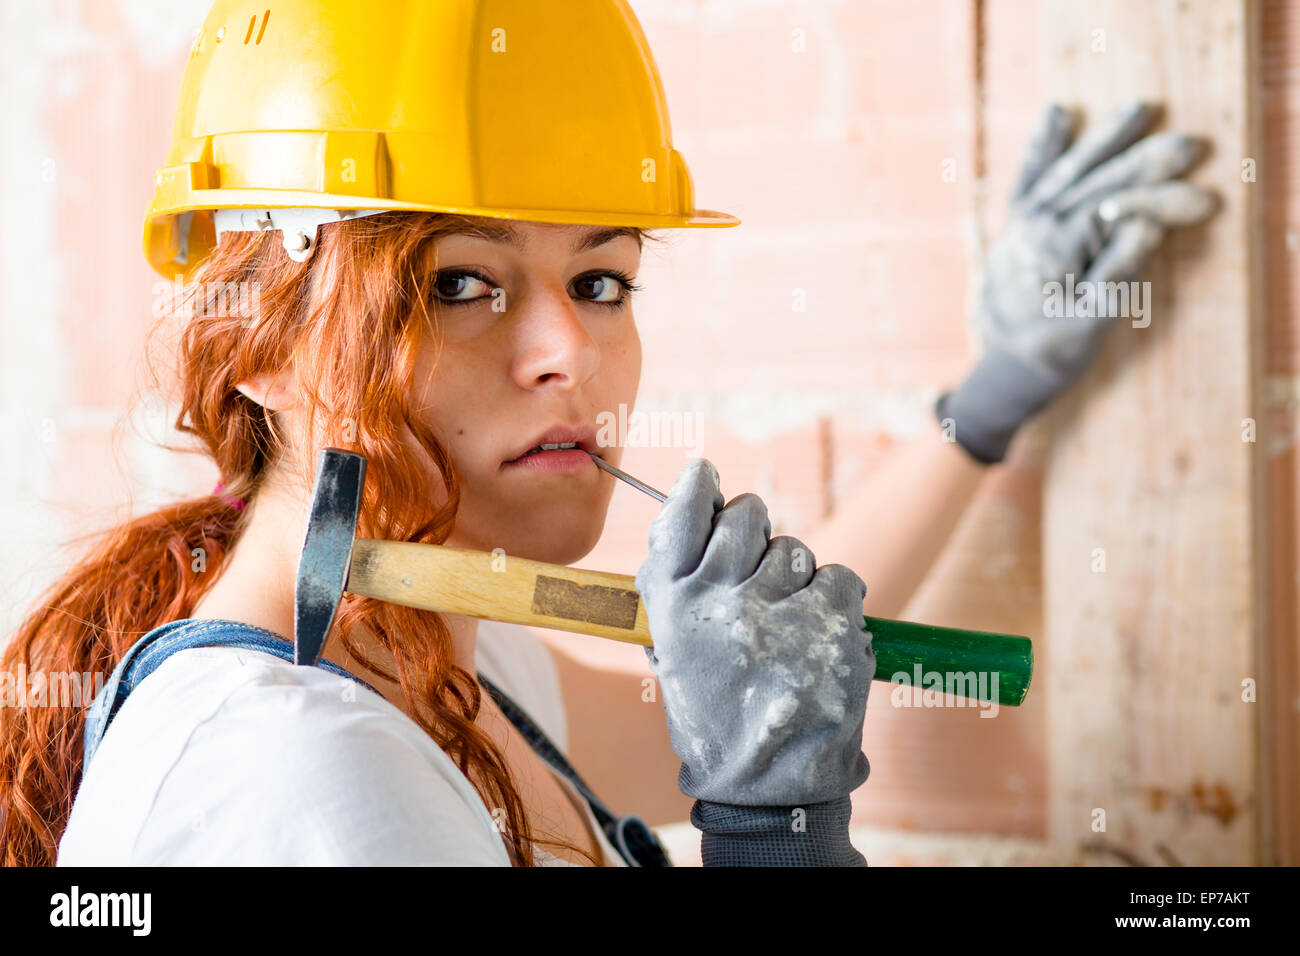 Woman Bricklayer with Helmet Holding a Hammer in Her Hand - Stock Image